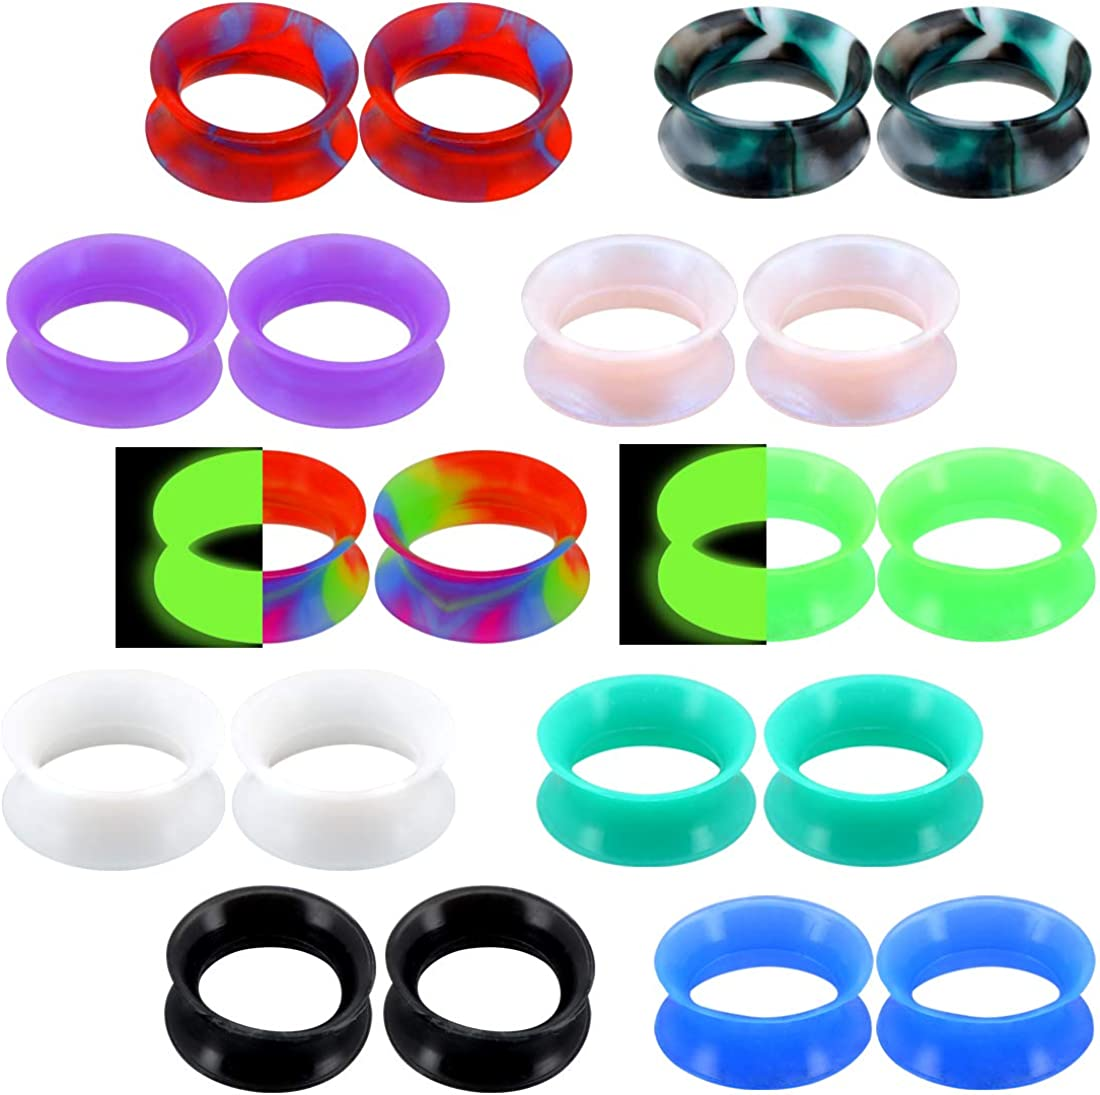 OUFER 20PCS Soft Silicone Ear Gauges Marble Pearlized Flesh Tunnels Plugs Stretchers Expander Double Flared Flesh Tunnels Ear Piercing Jewelry